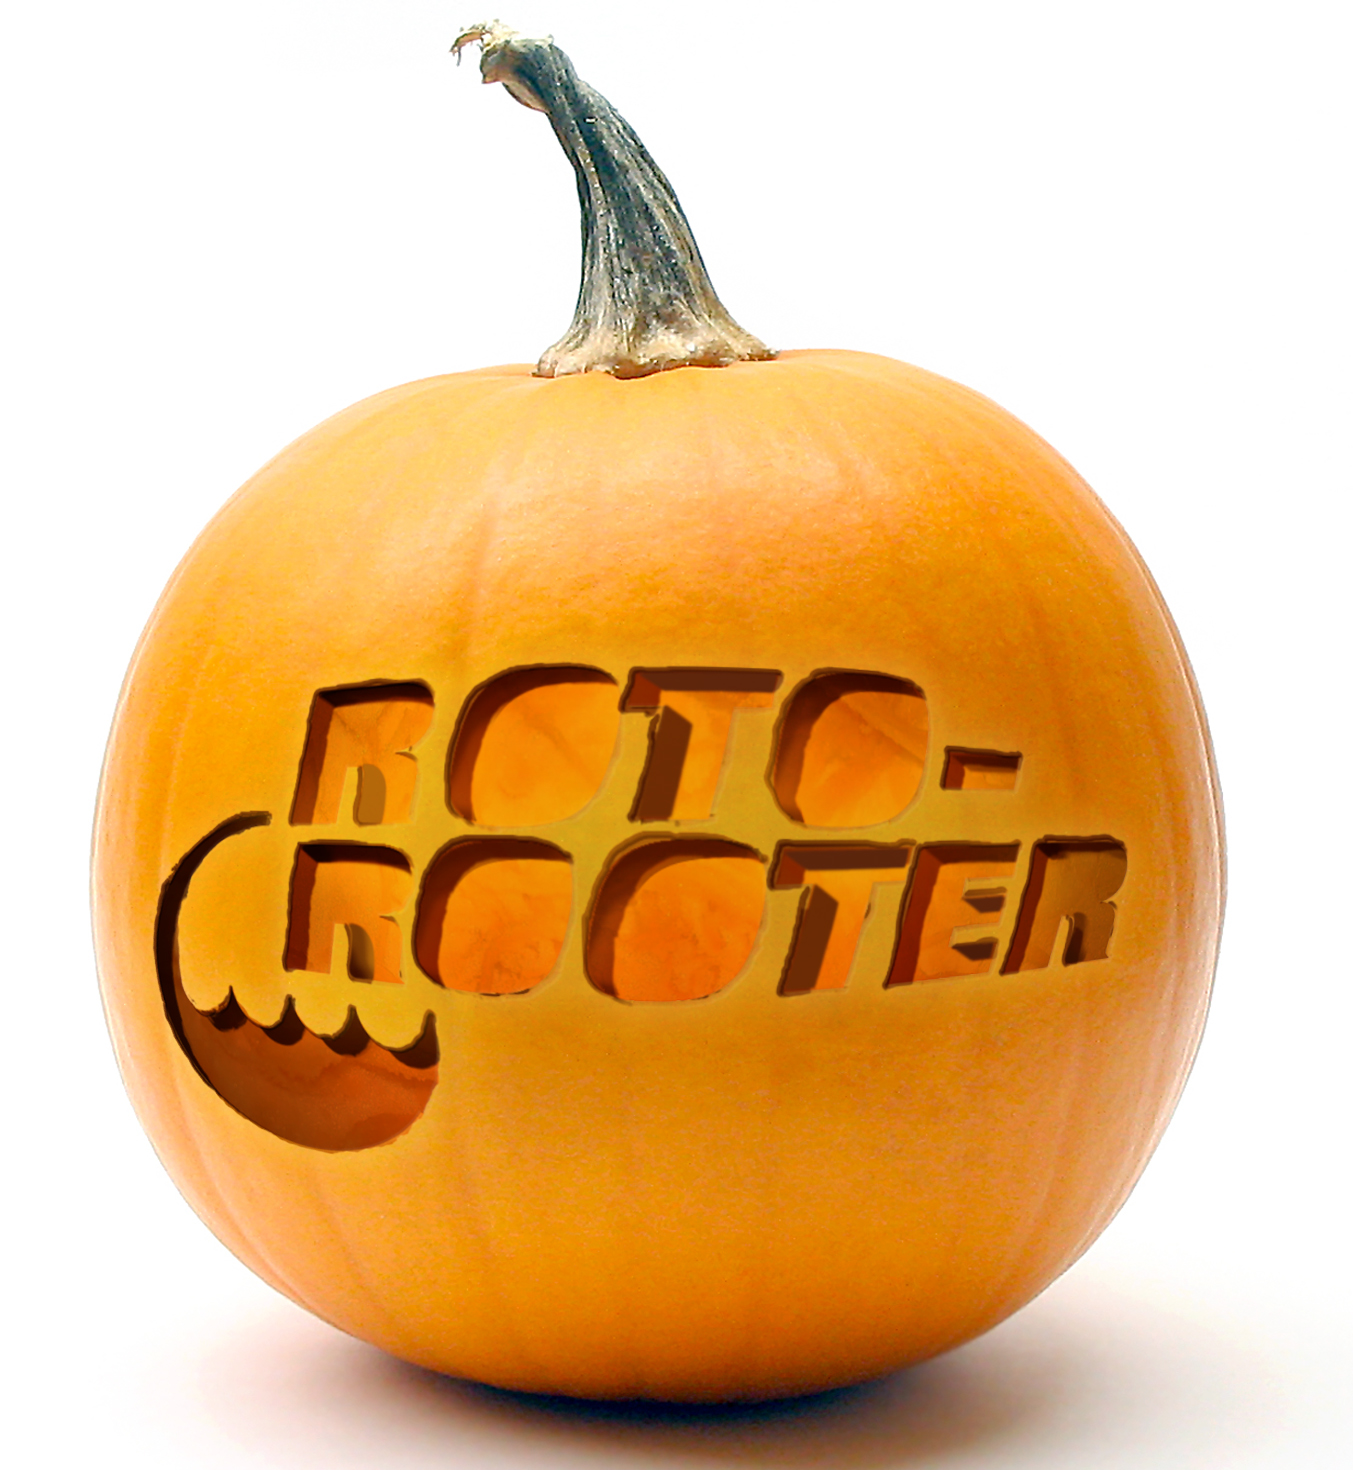 Image Result For Roter Rooter